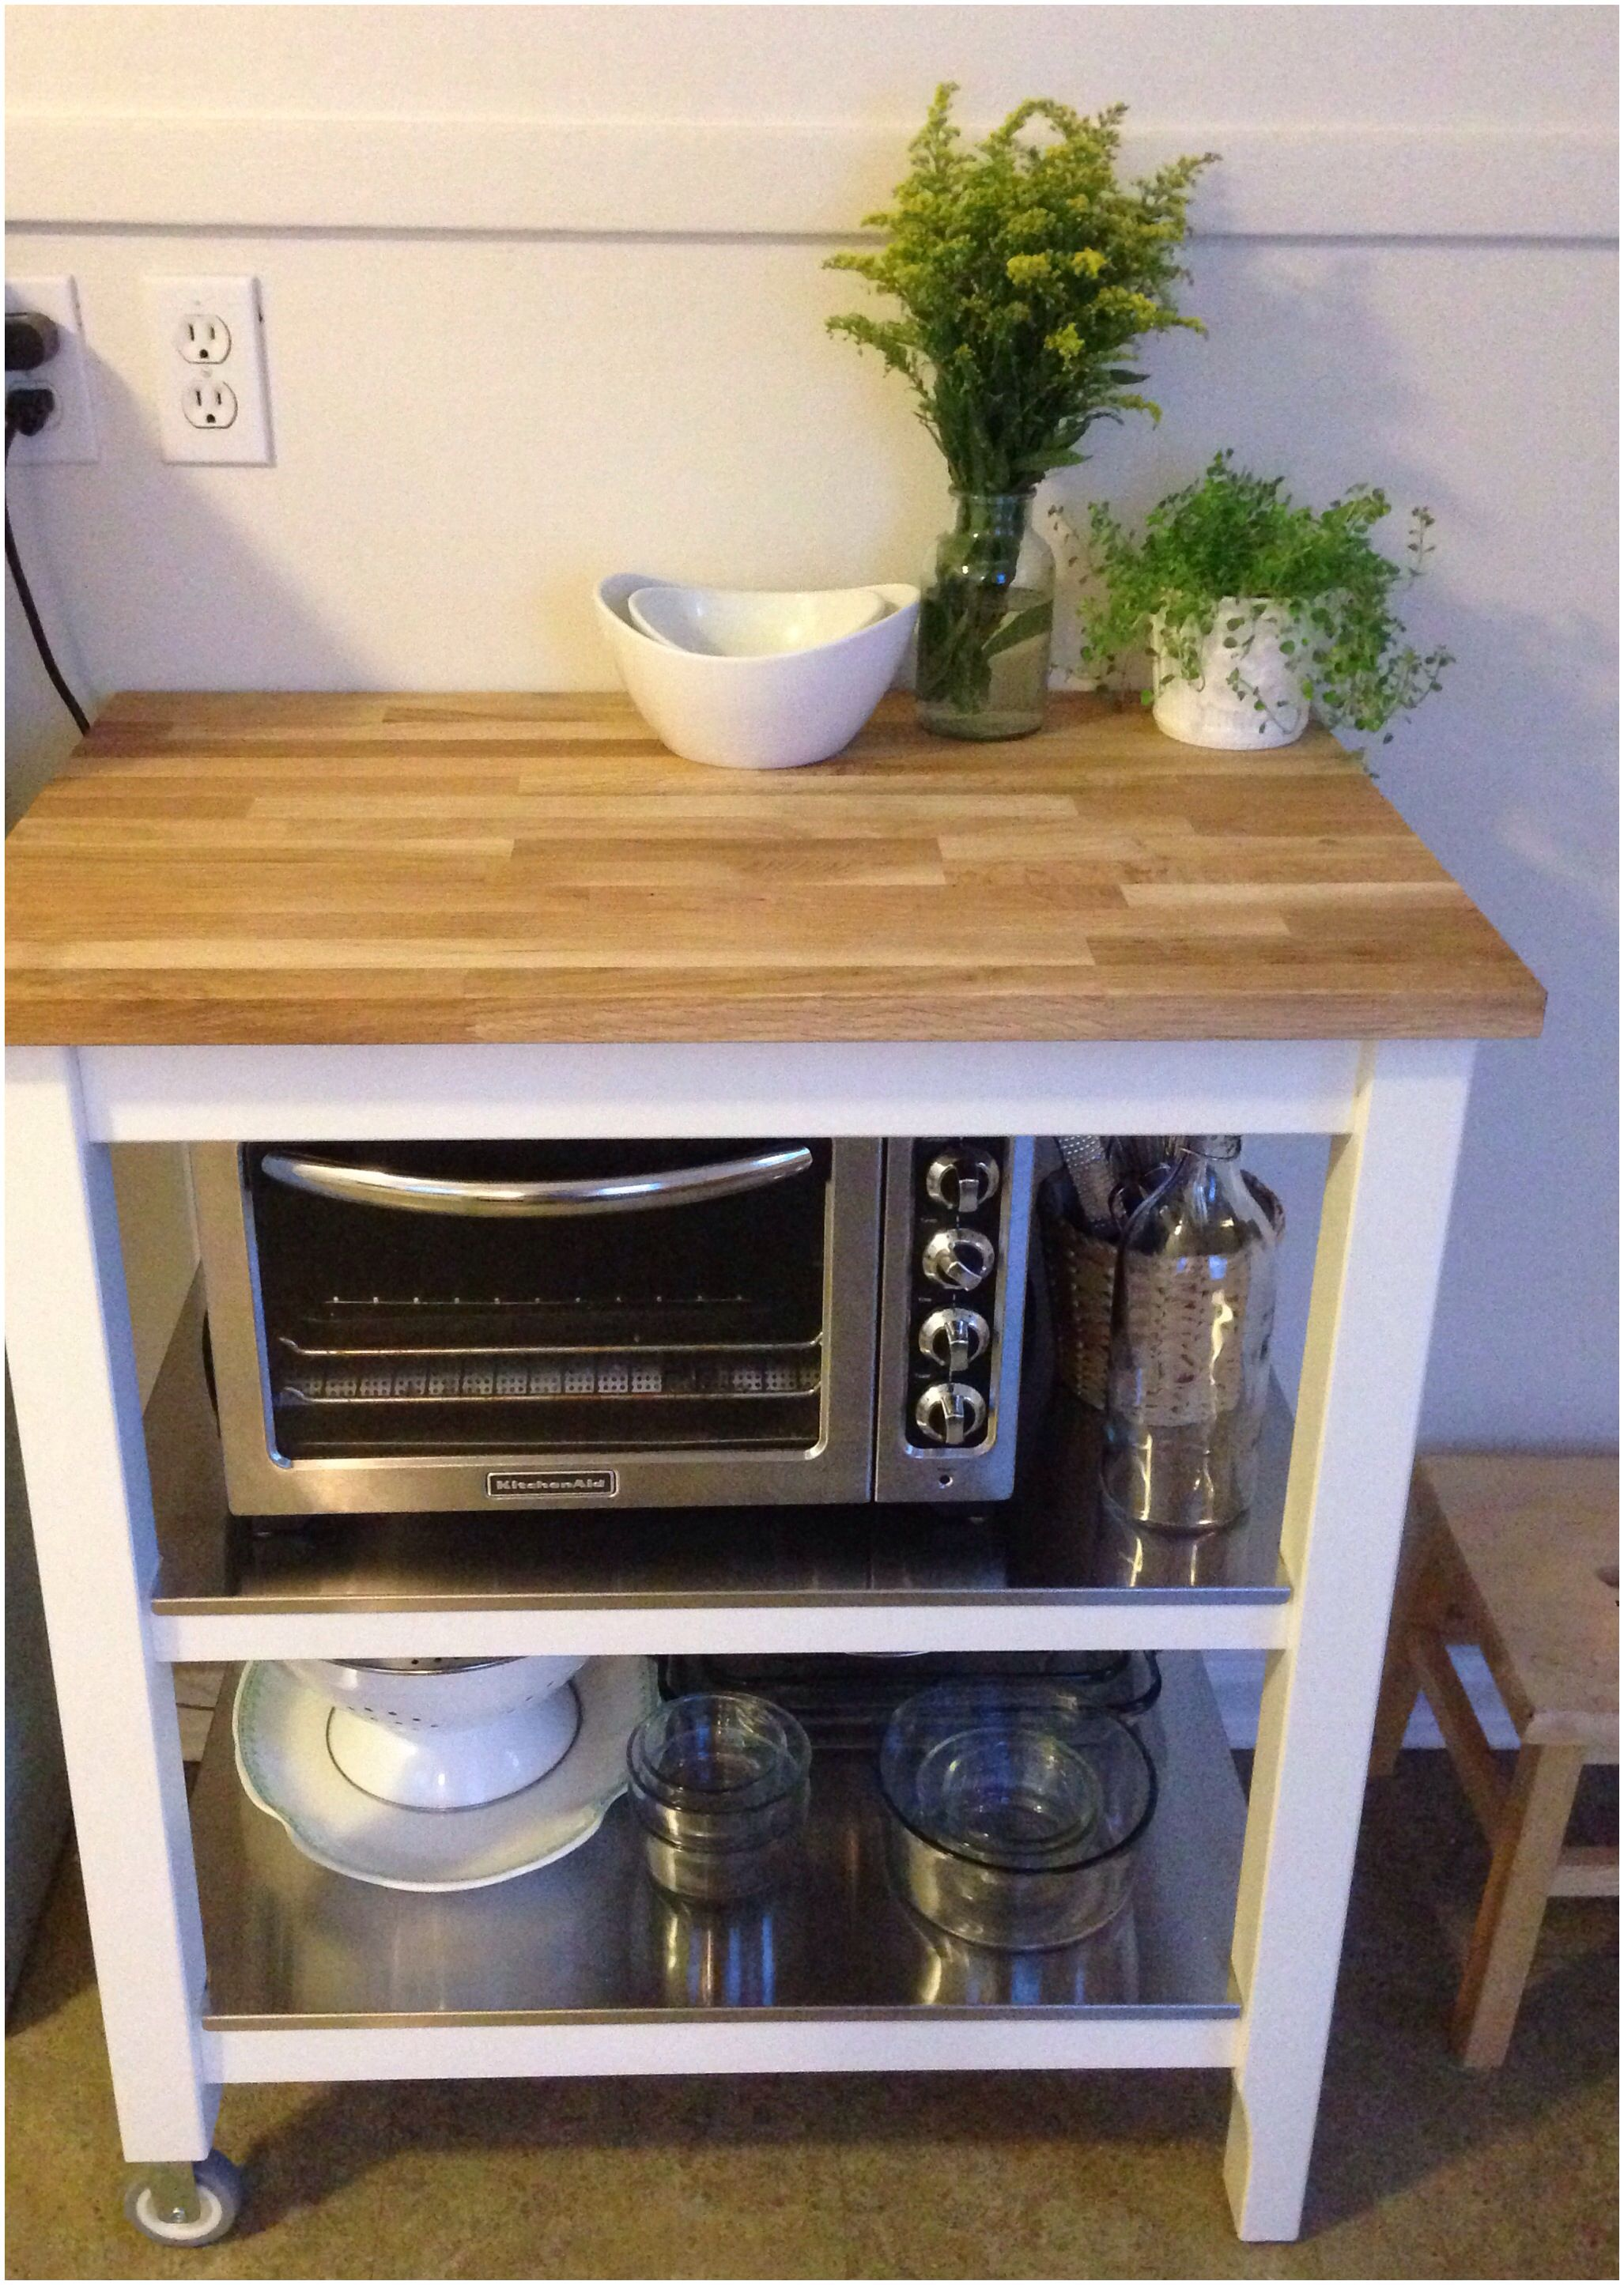 Microwave Kitchen Cart Rustic Chairs My New Ikea Stenstorp Is Everything I Dreamed